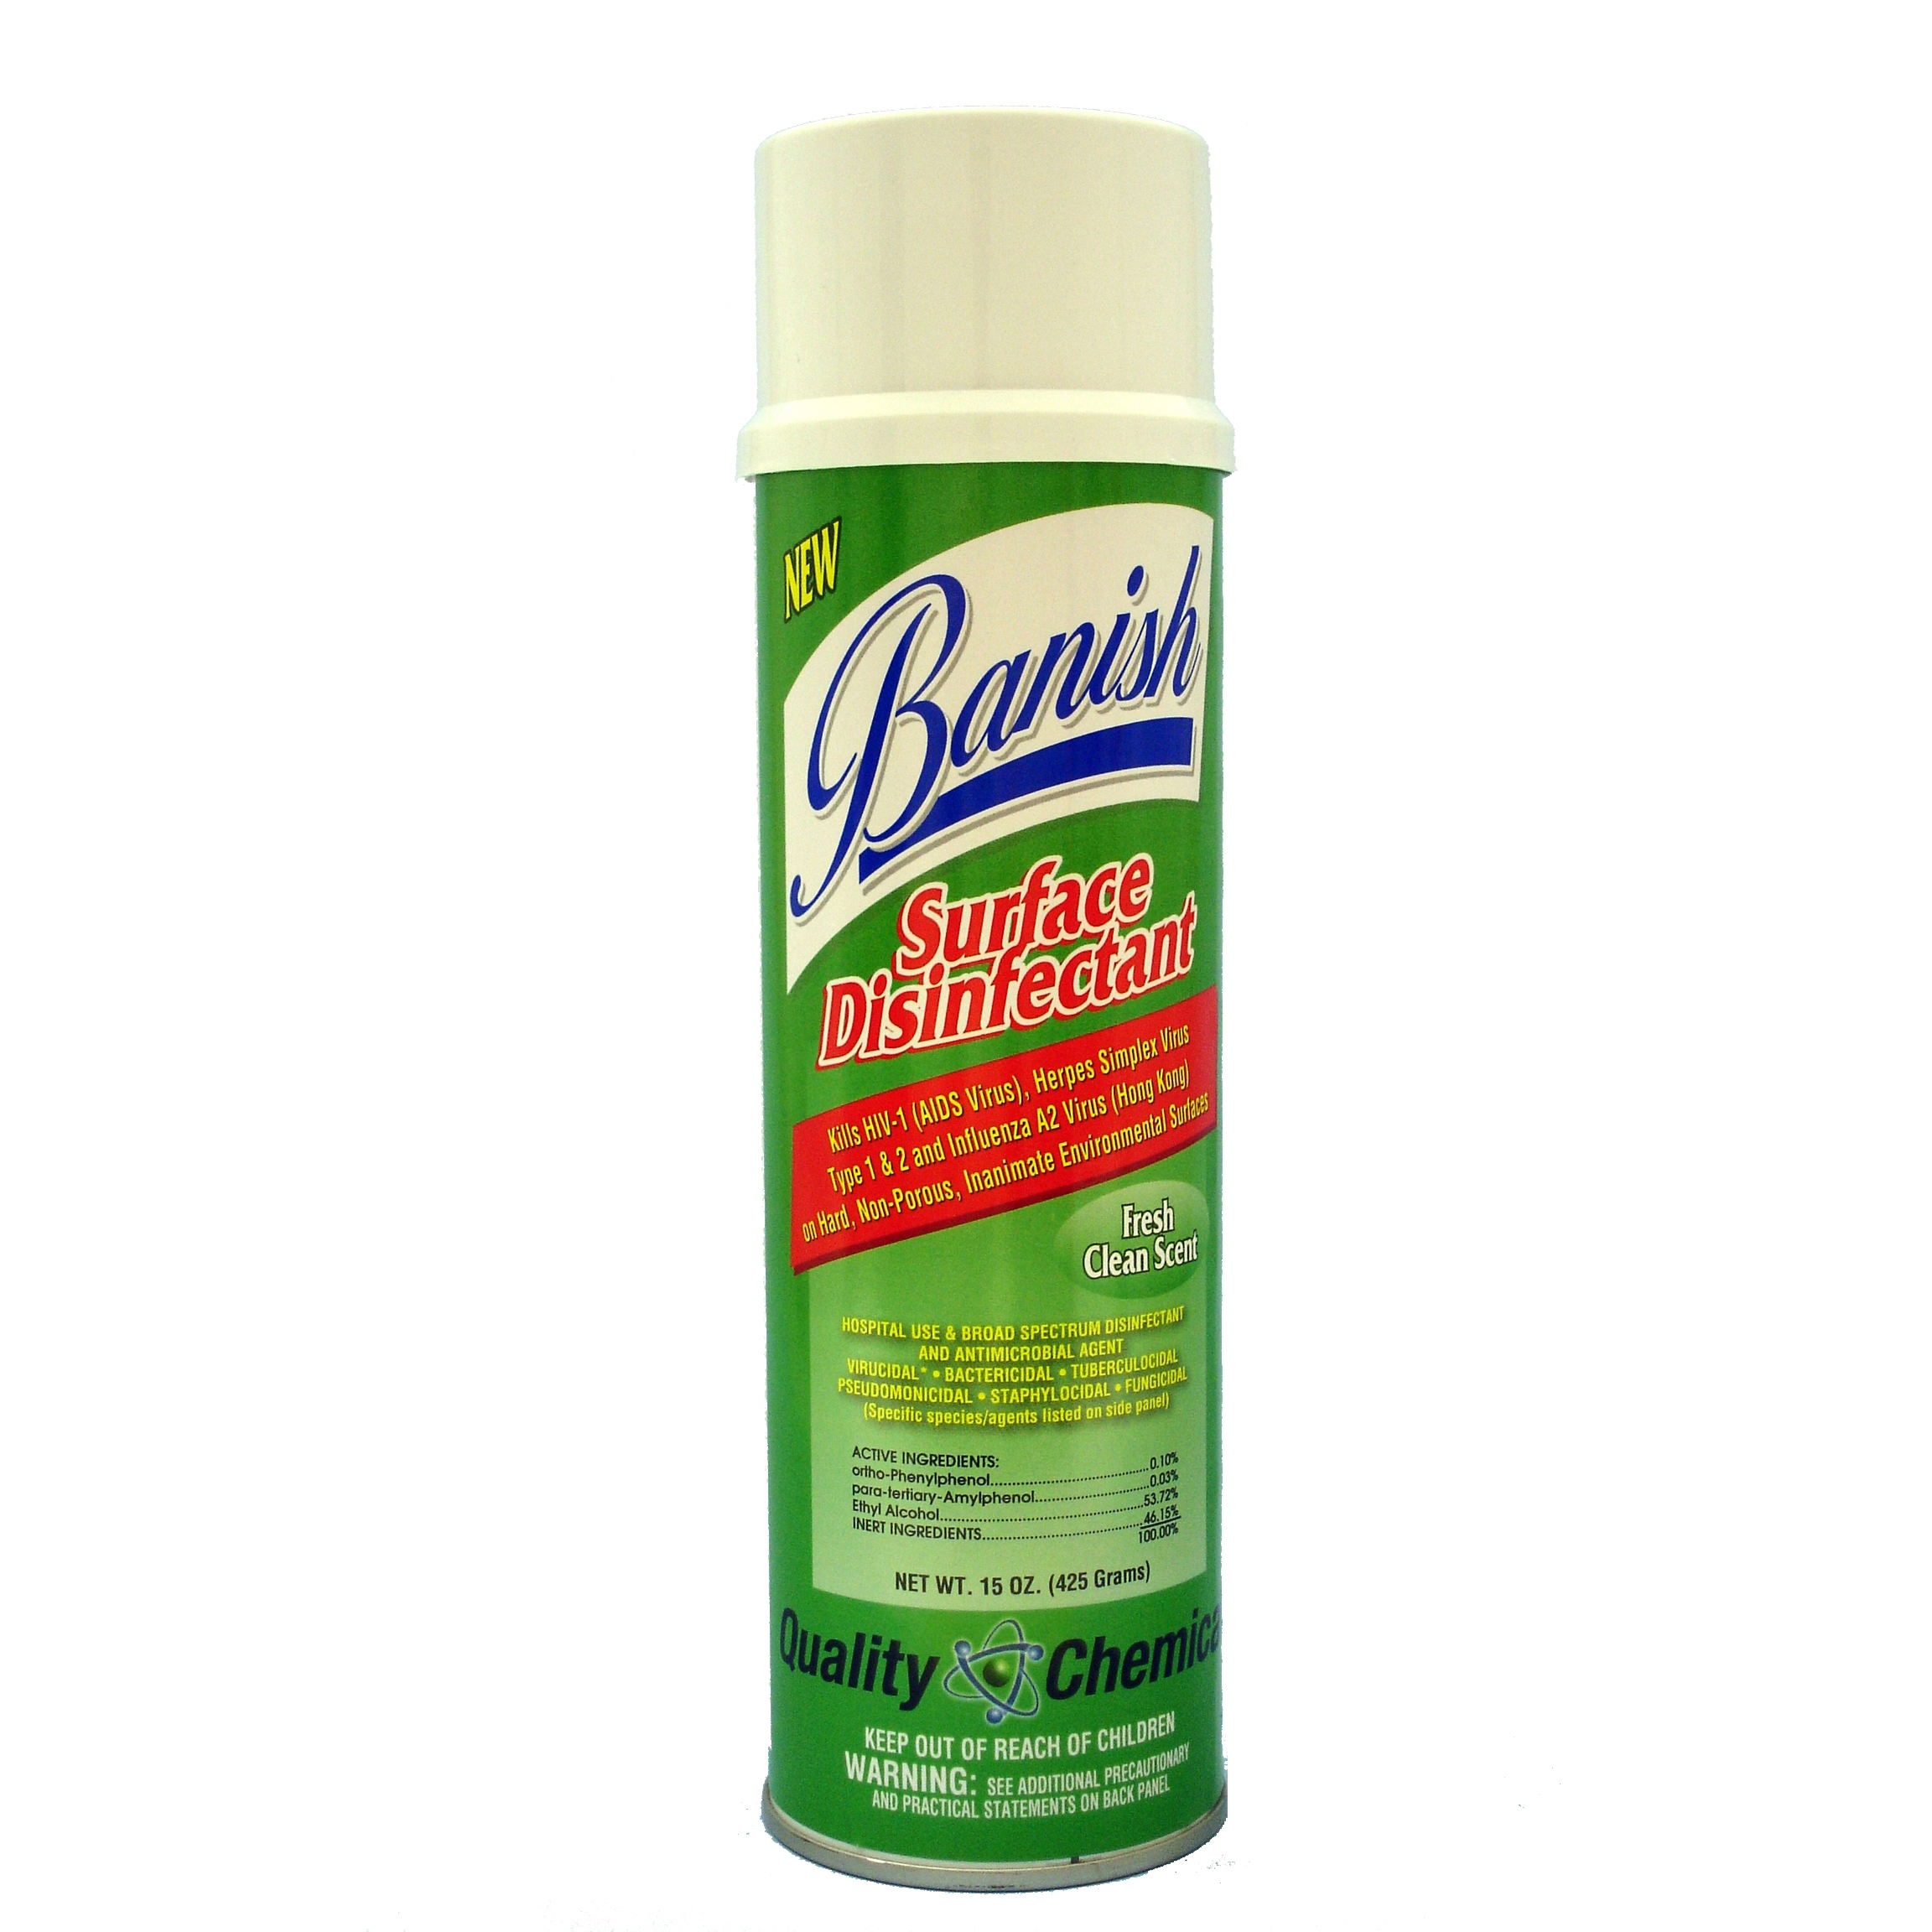 Banish Disinfectant Spray